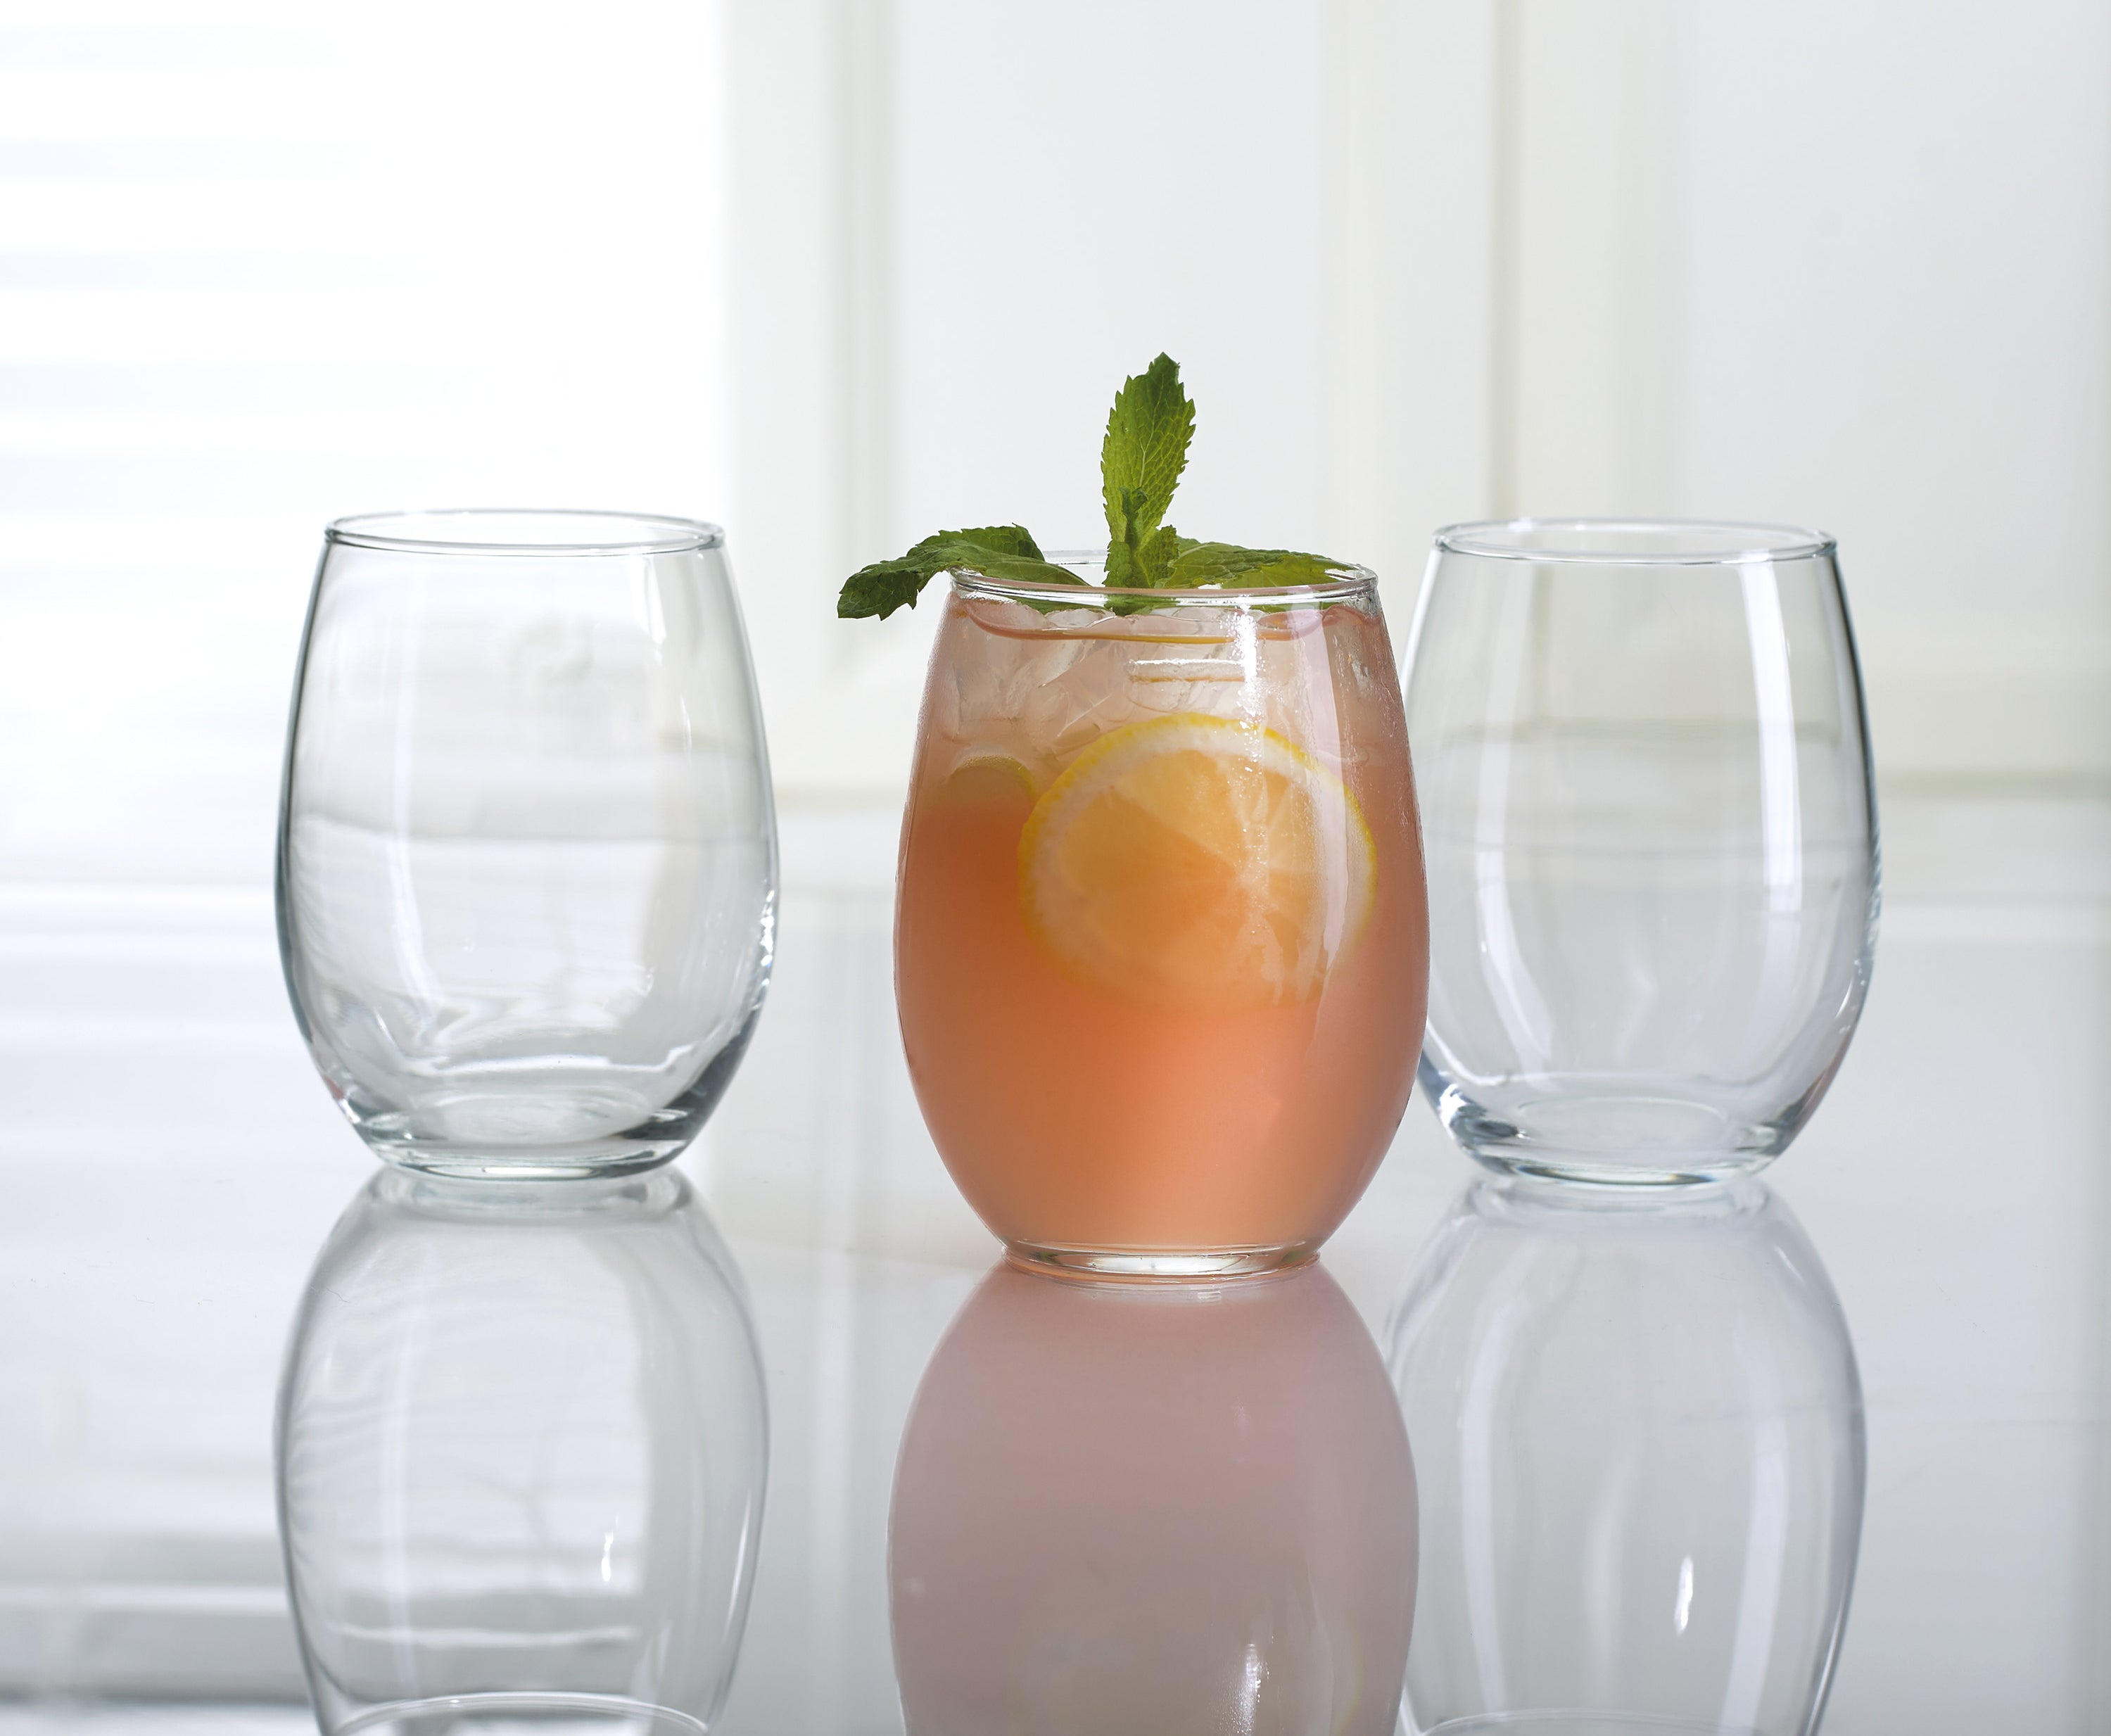 Three of the stemless wine glasses, one holding a fancy cocktail